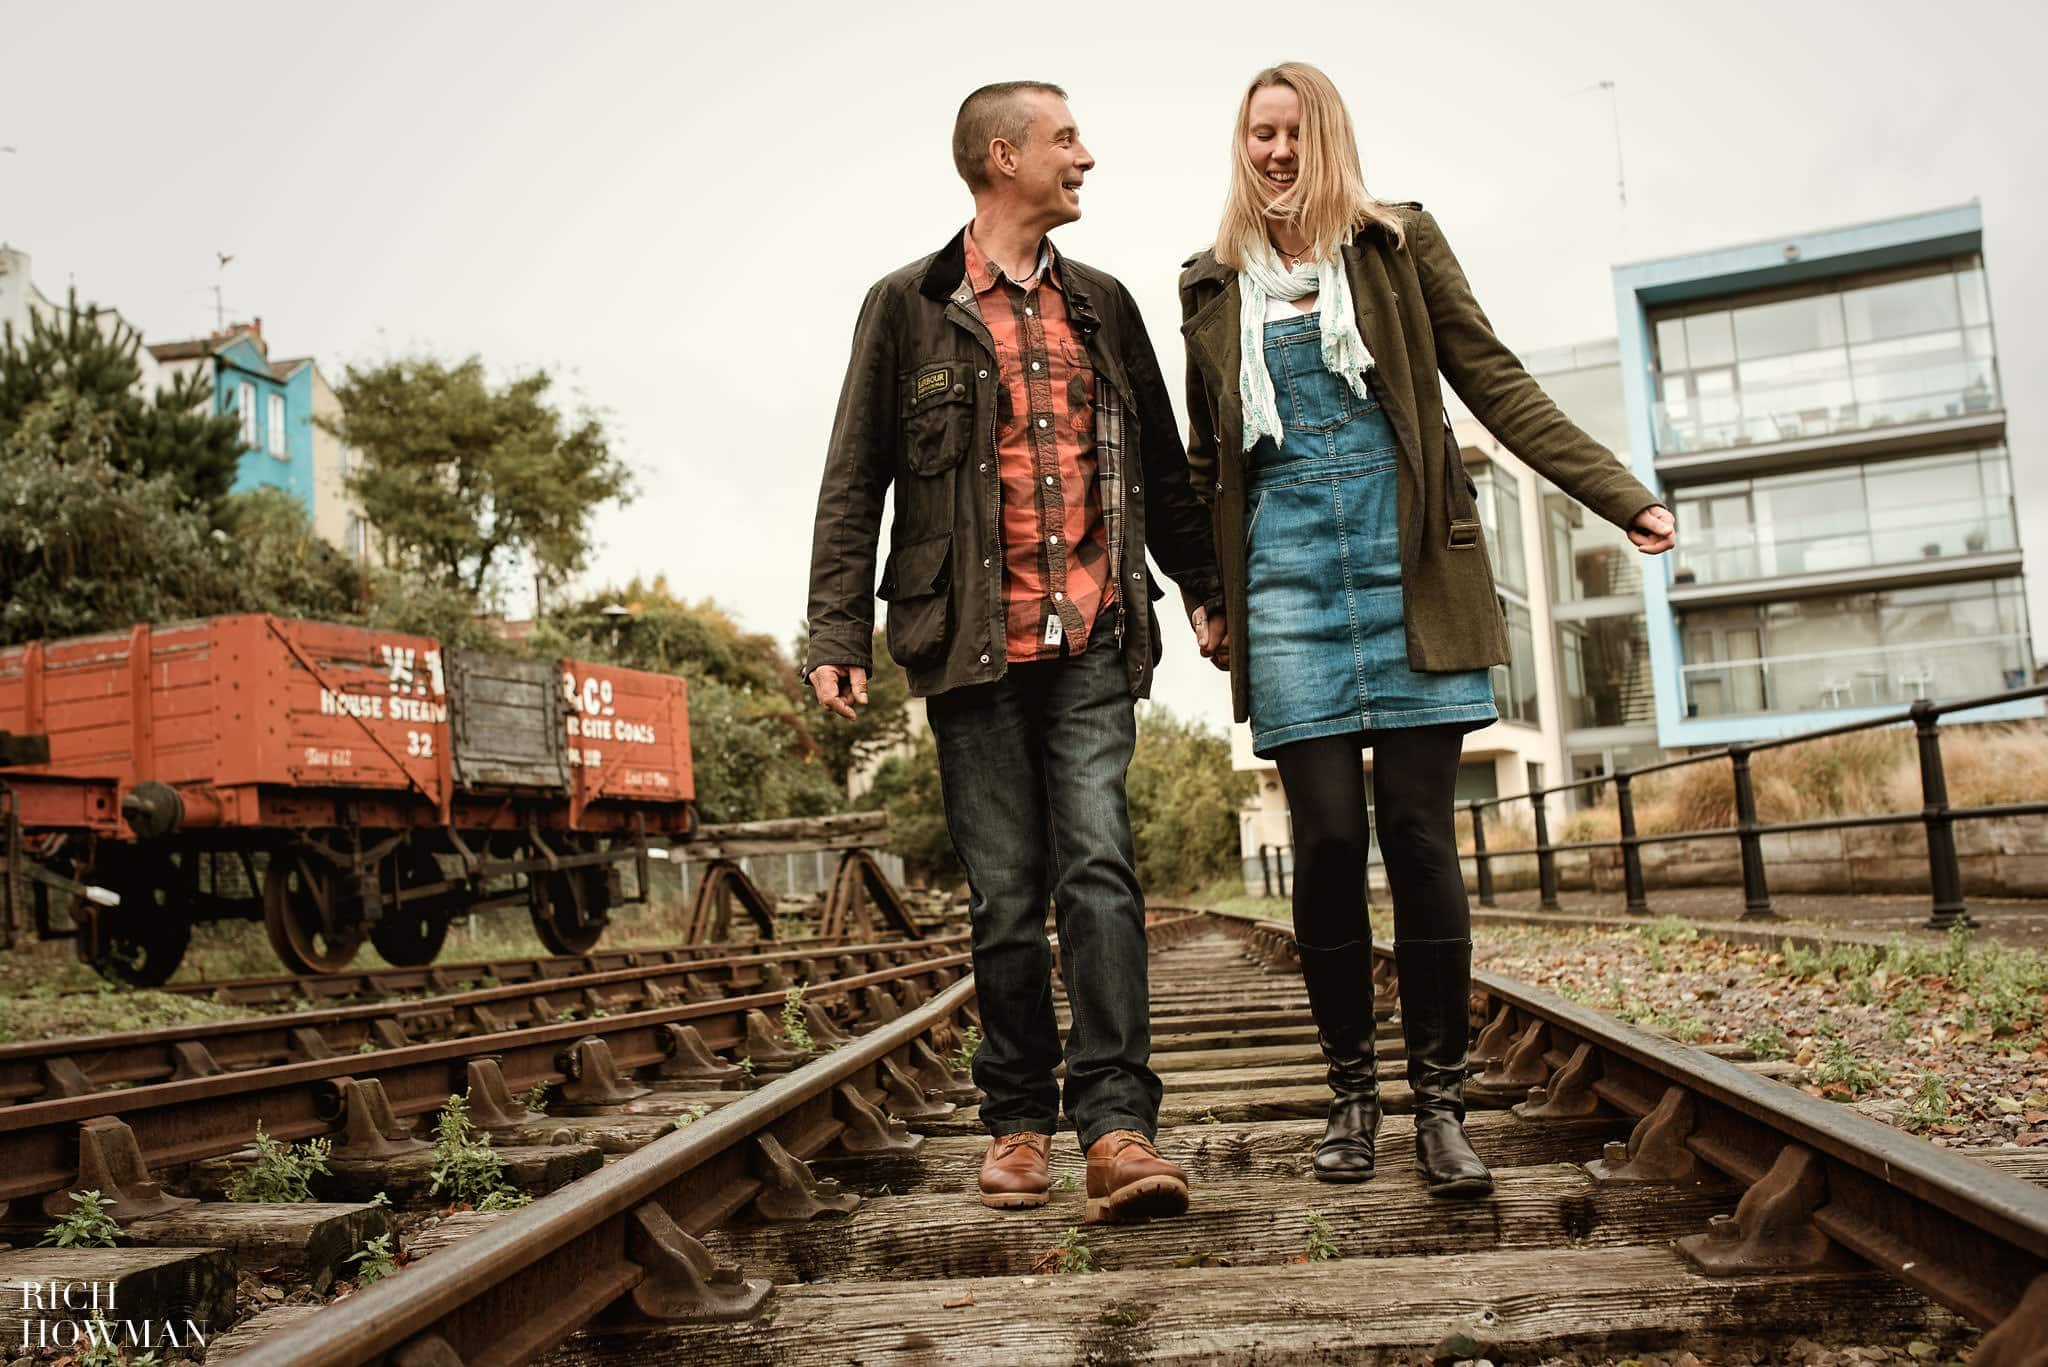 Engagement photography in Bristol by award winning photographer Rich Howman